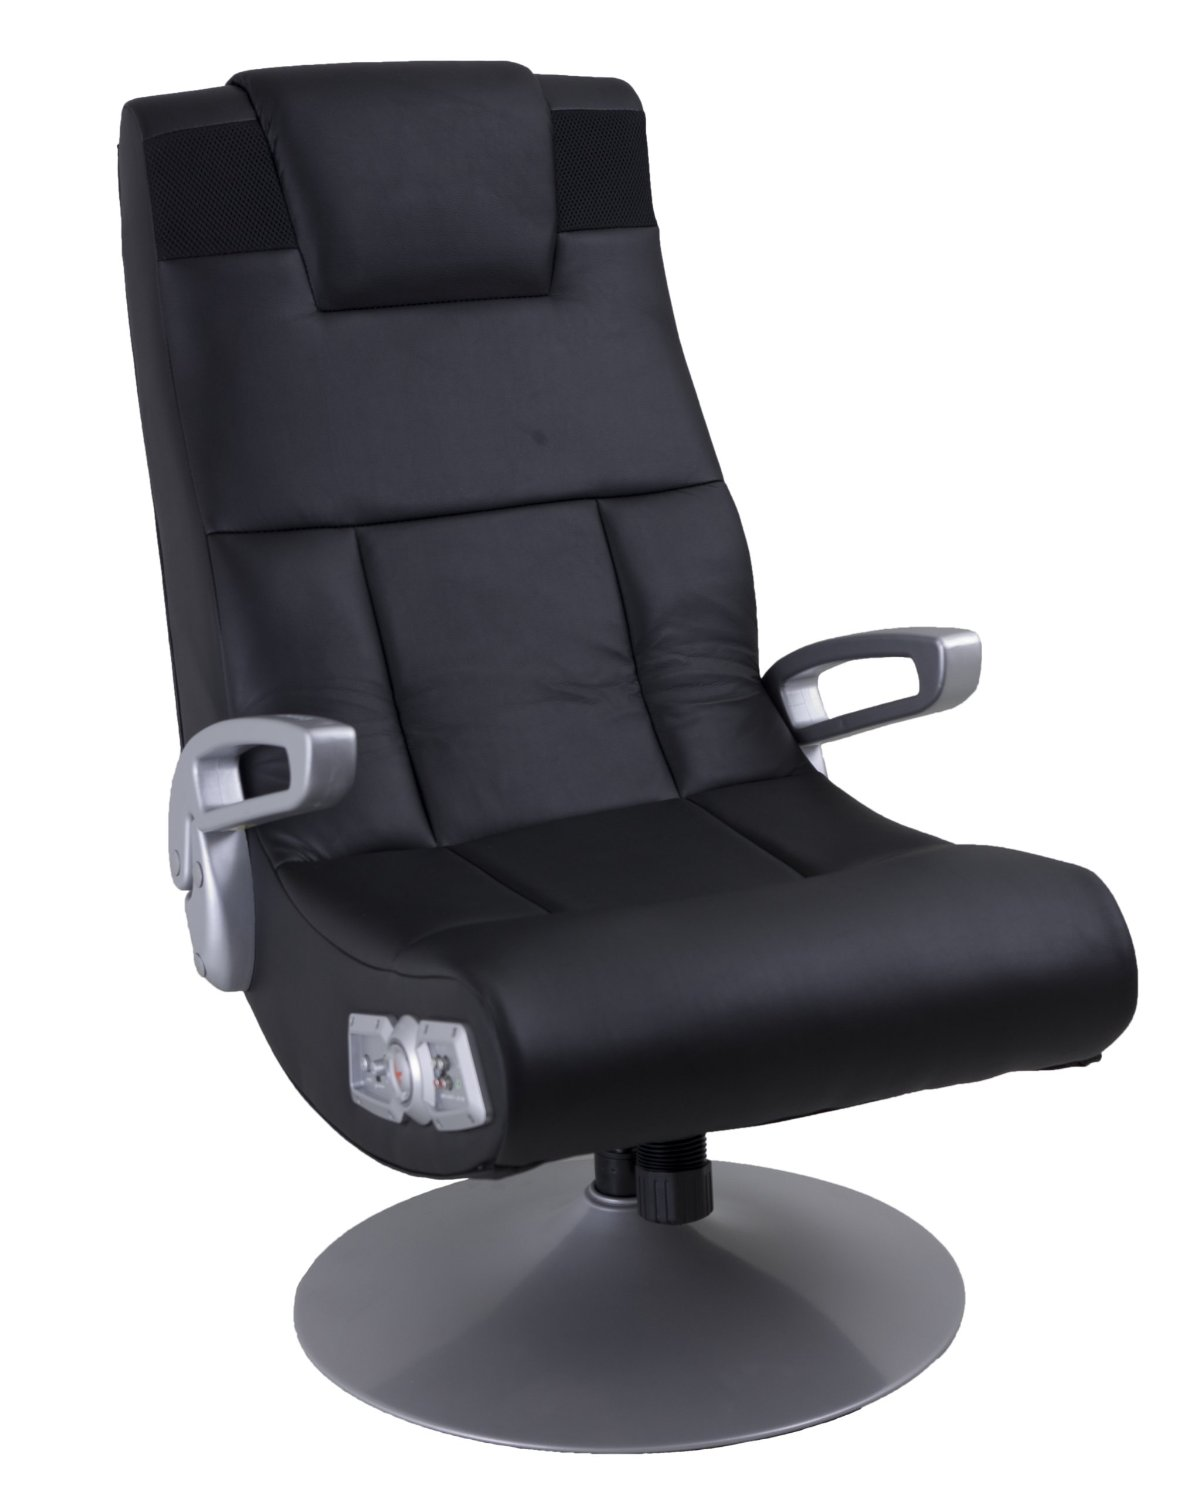 Video Games Chair 5 Video Gaming Chairs For Racing Accessories Lists